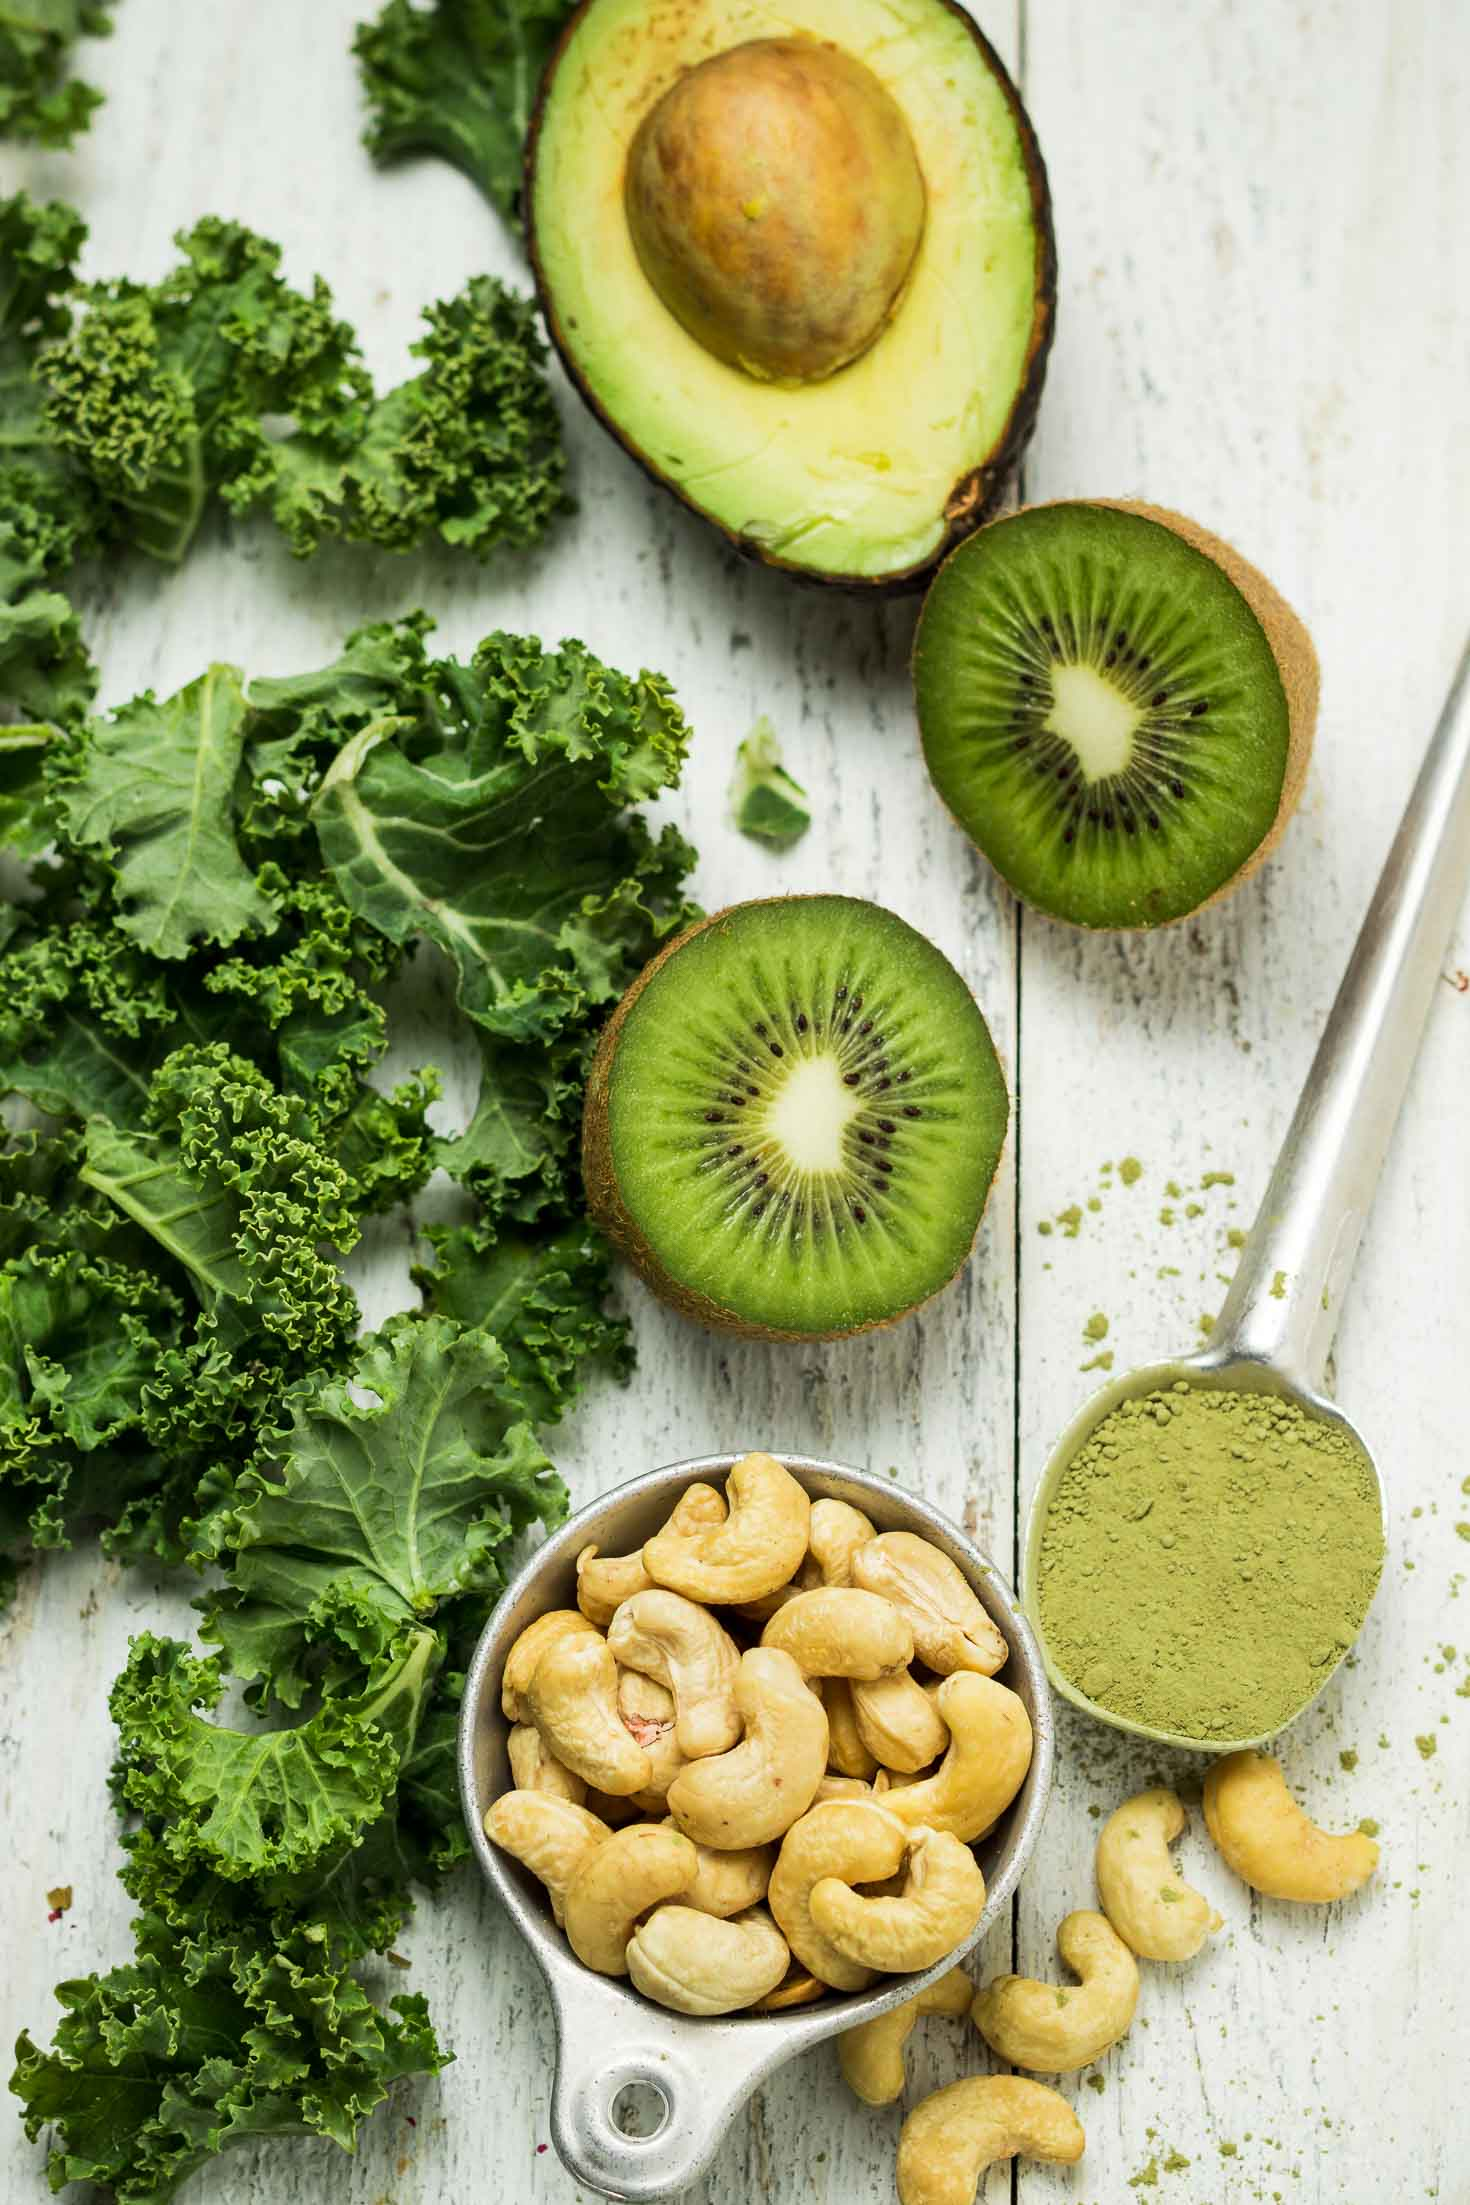 Green Kiwi Matcha Protein Smoothie-top view-ingredients-cashew nuts, matcha powder, kale leaves, kiwifruit, avocado